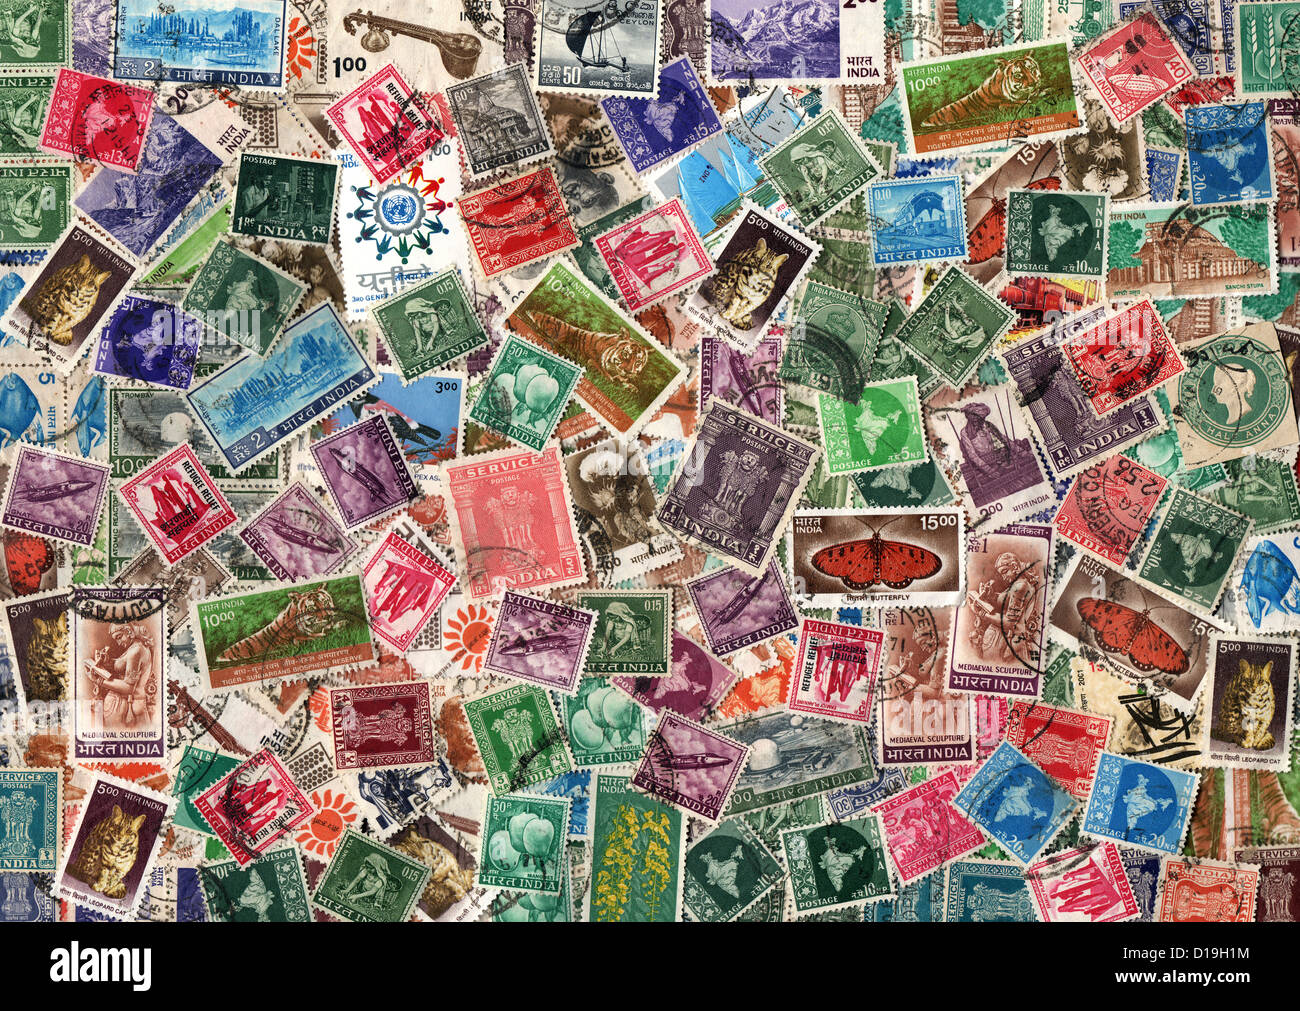 background of old used indian postage stamps stock photo 52456704